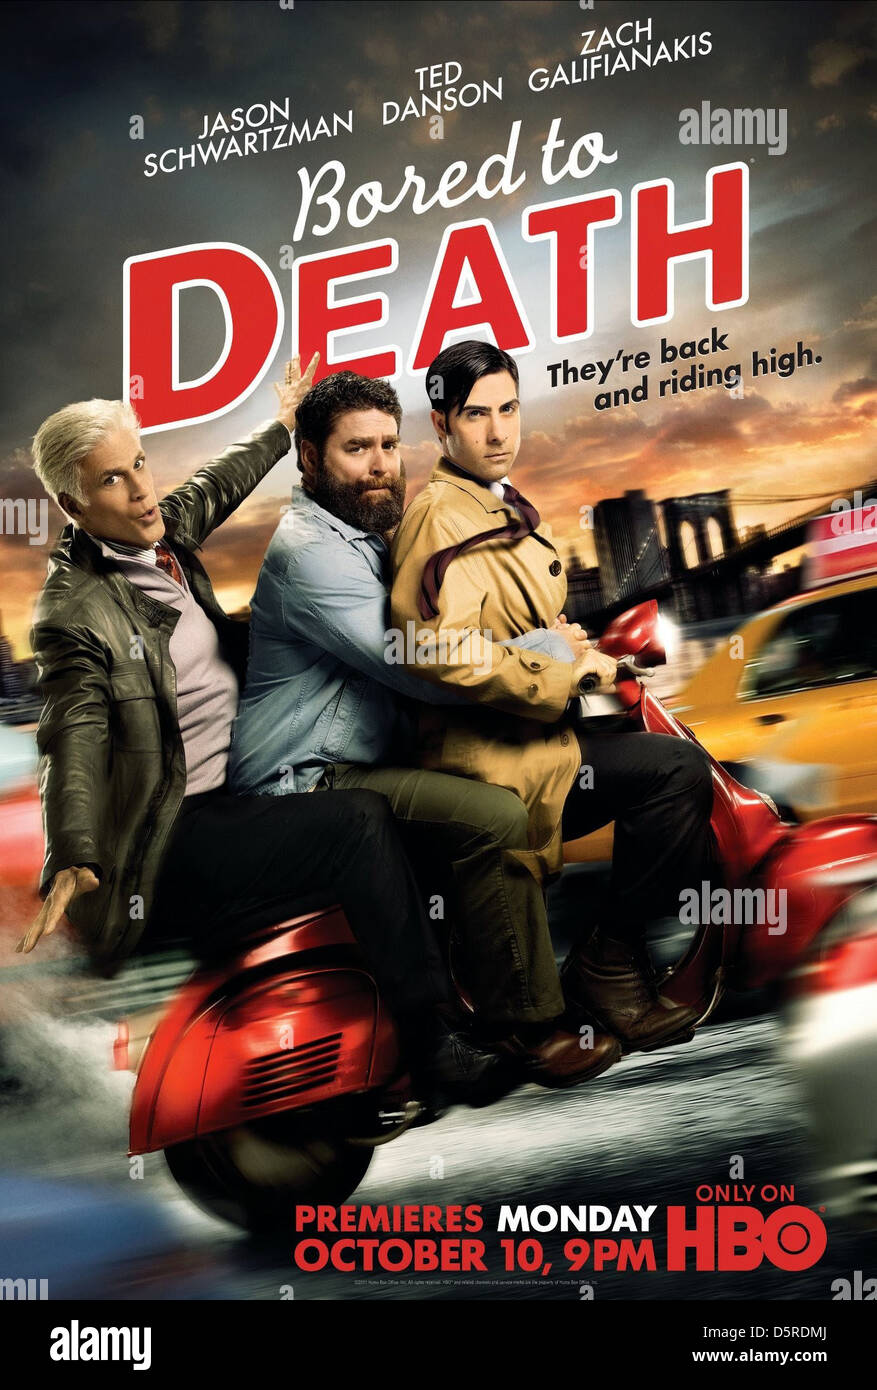 Ted Danson Zach Galifianakis Jason Schwartzman Bored To Death Stock Photo Alamy